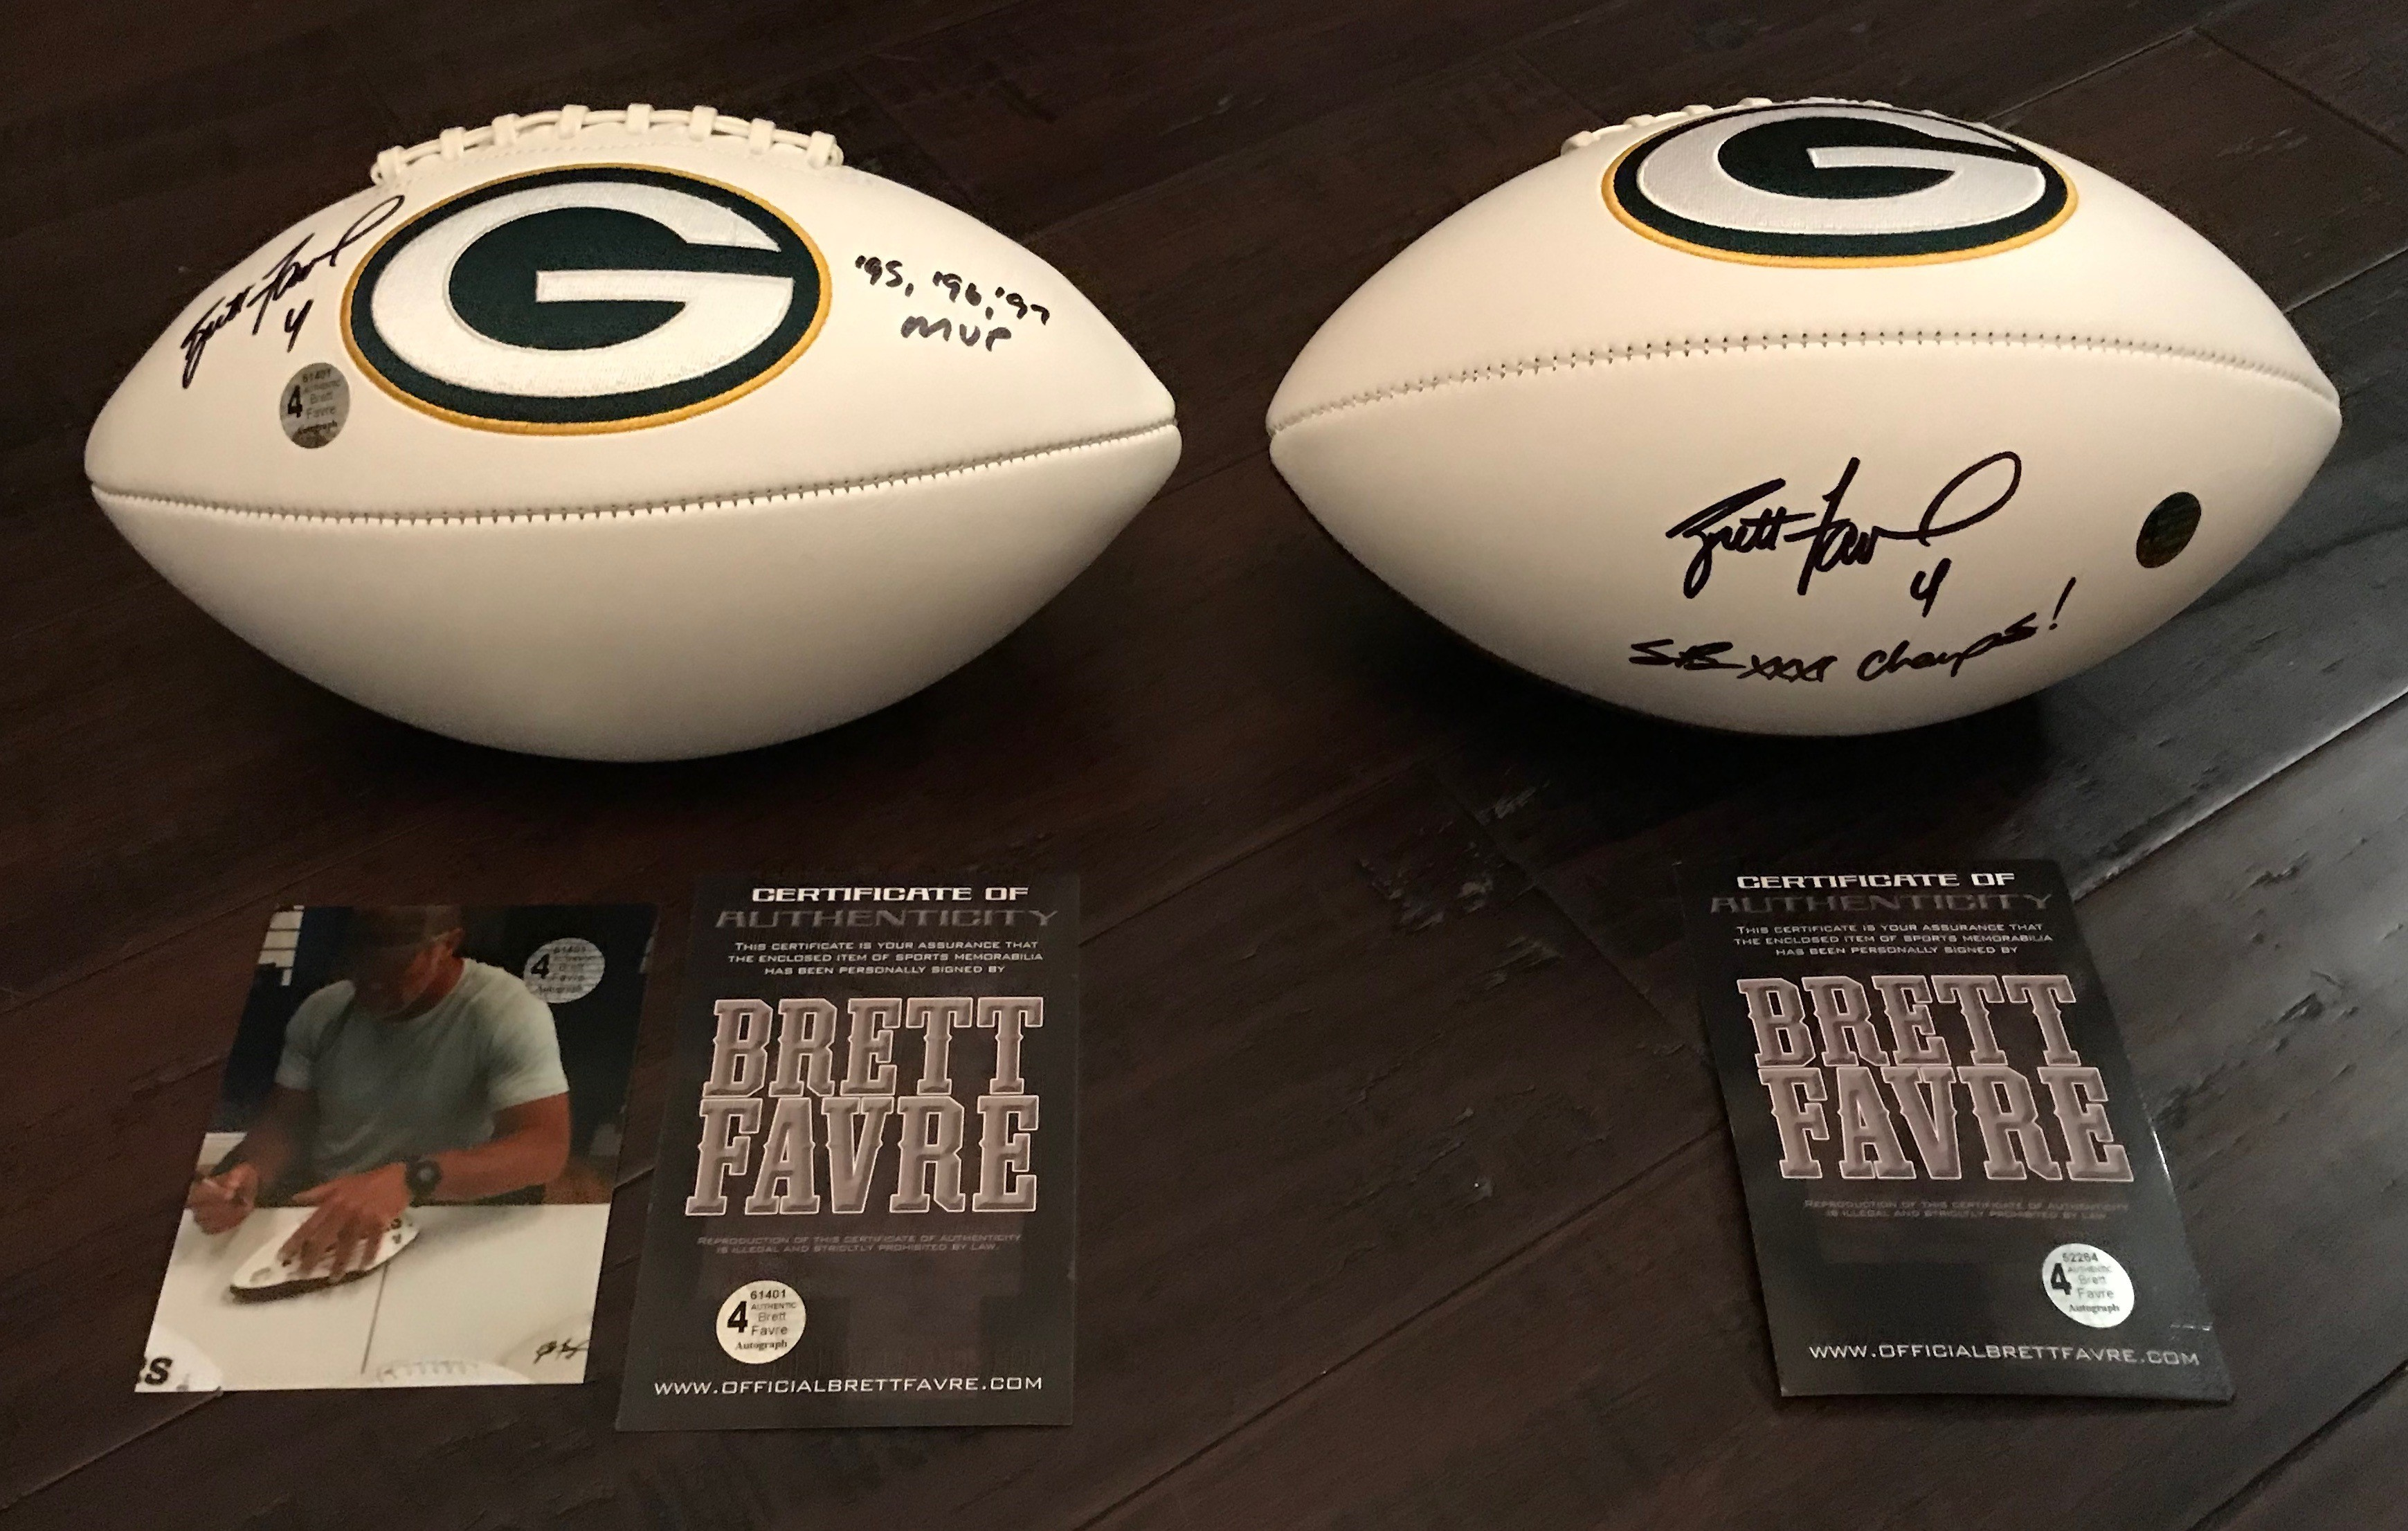 3dcc610845e Sports Memorabilia Online Auction in Indianapolis, IN - Key Auctioneers